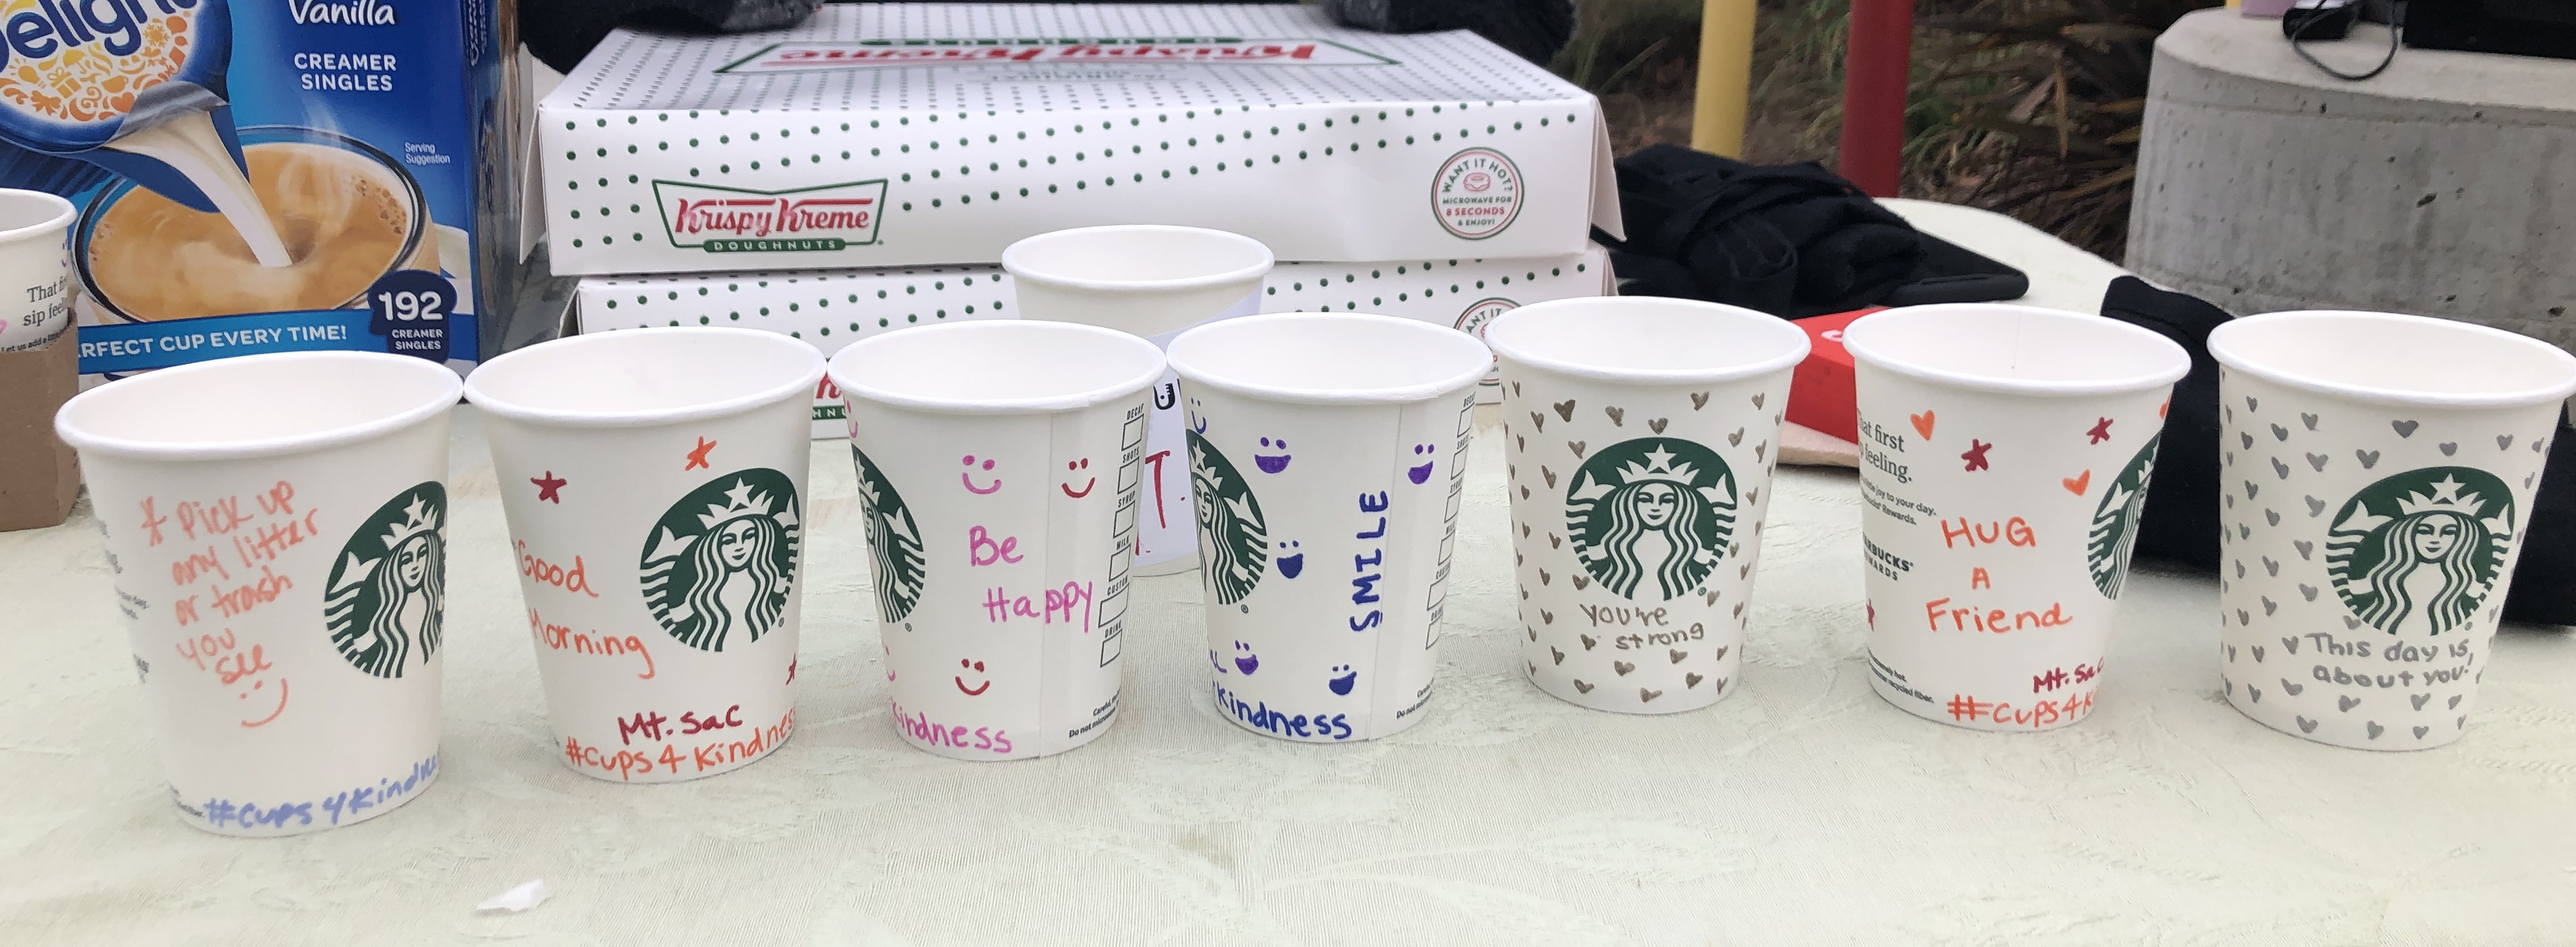 cups for kindness 4